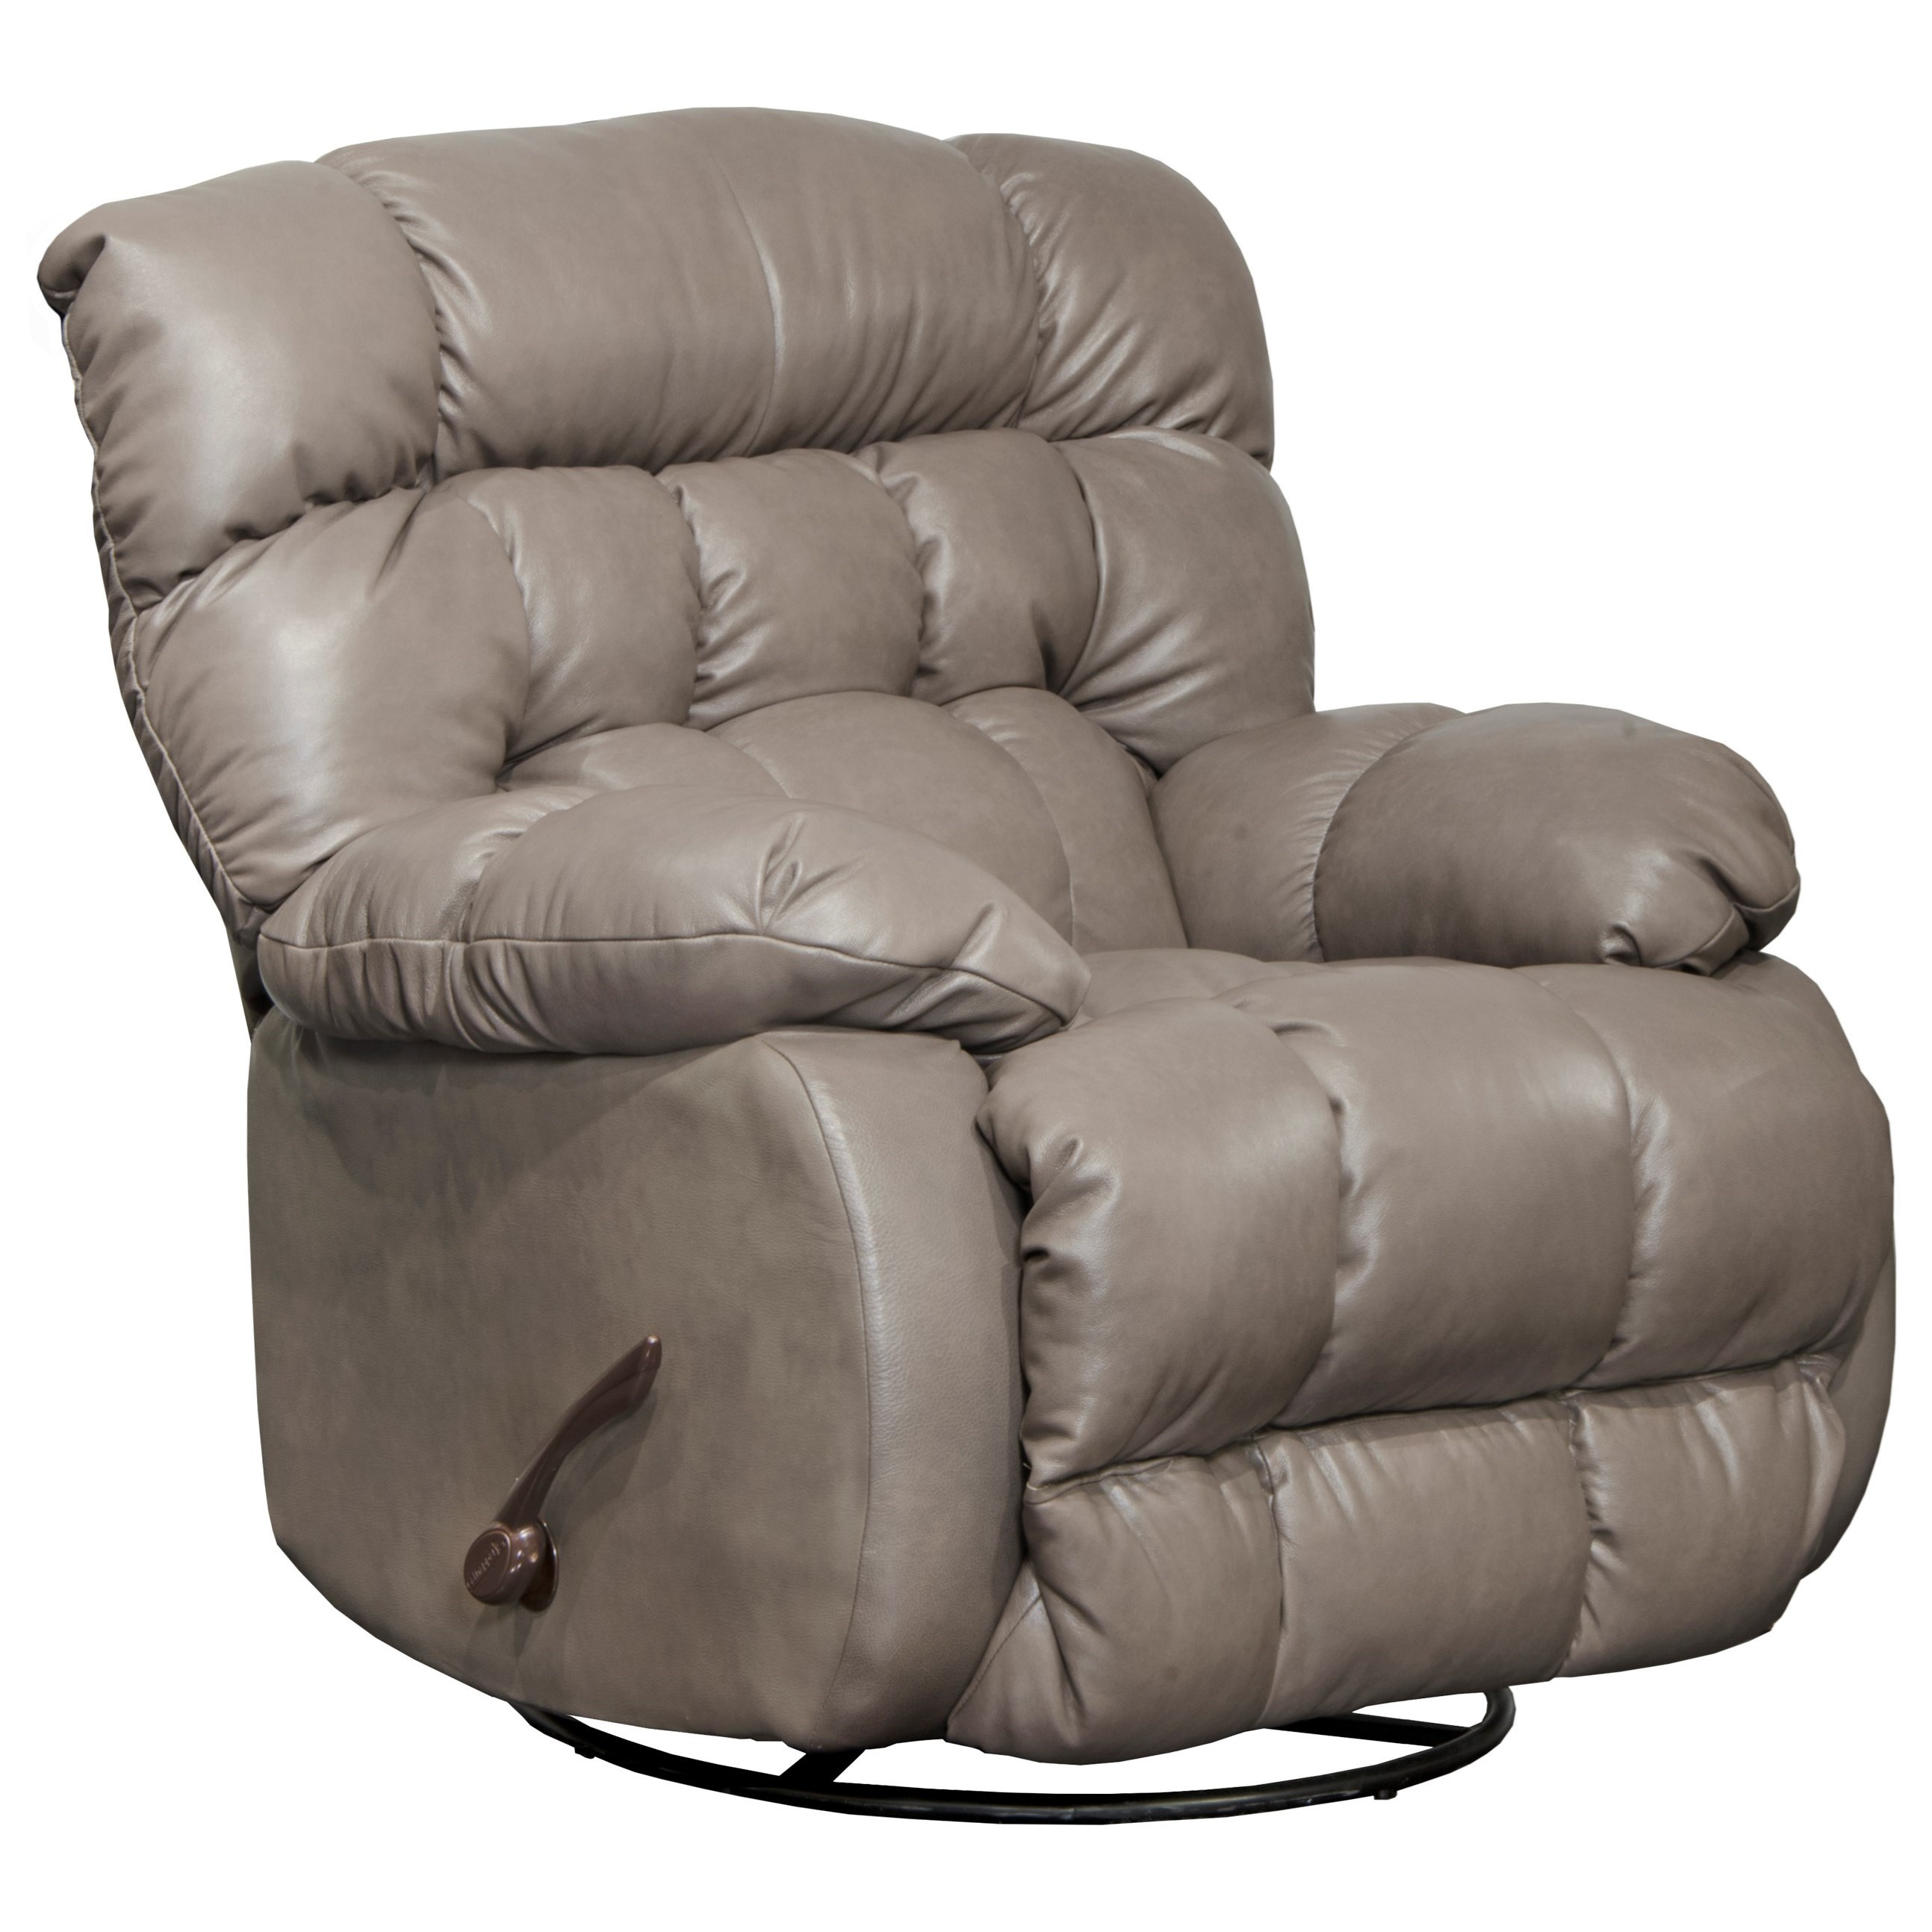 Catnapper Motion Chairs And Recliners Pendleton Chaise Swivel Glider  Recliner   Item Number: 4213